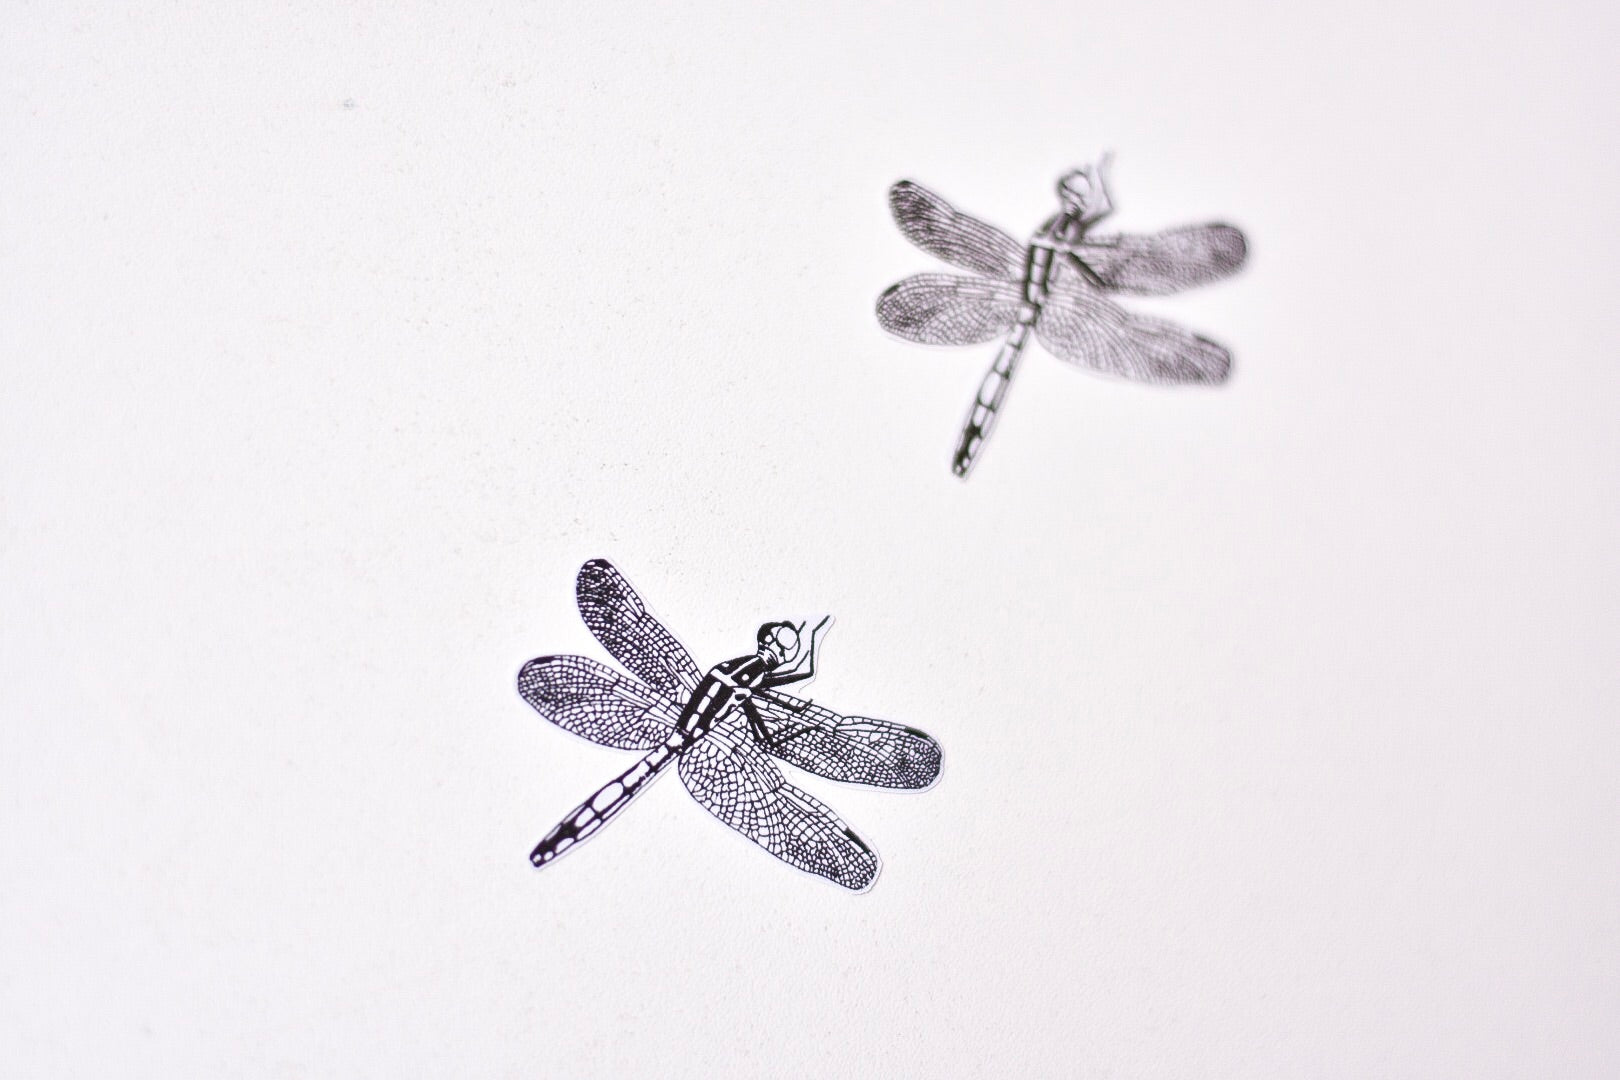 Dragonfly Fabric Wall Decals - Separates